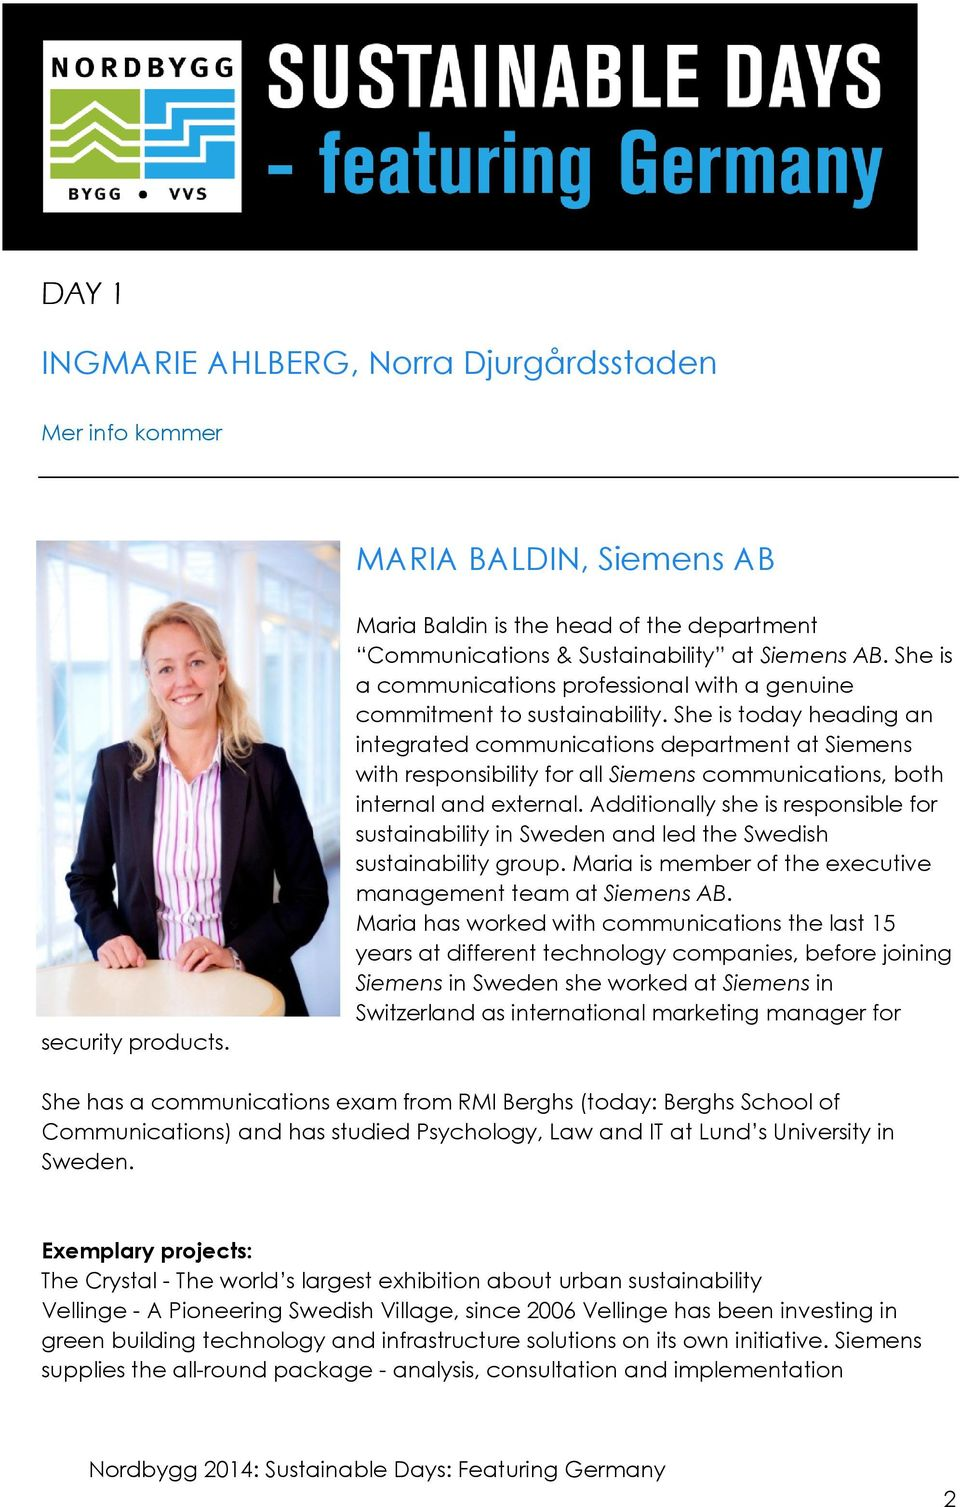 She is today heading an integrated communications department at Siemens with responsibility for all Siemens communications, both internal and external.